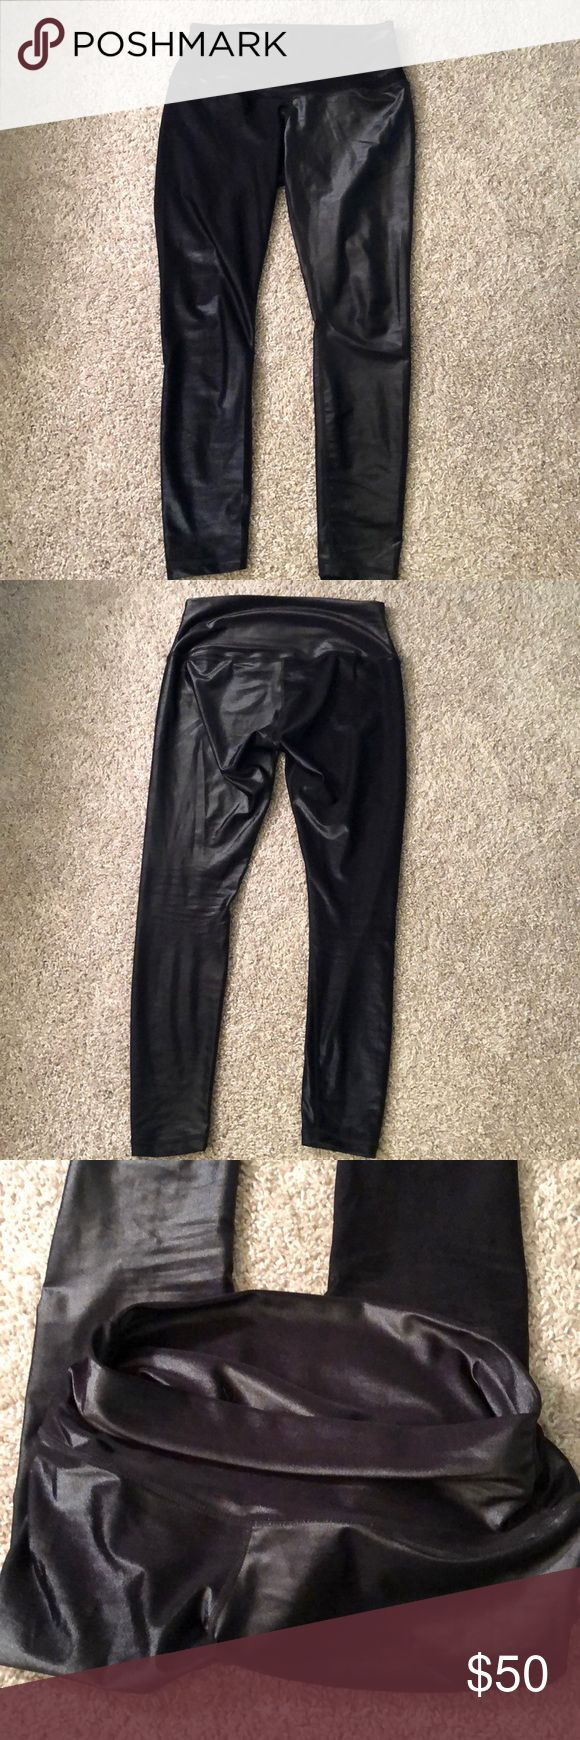 "DYI Define Your Inspiration high shine leggings The label has peeled off (it was tagless) but I've only worn these a few times. Runs small. I'm 125 lbs and 5'7"" and they fit me. Always hand washed and air dried. dyi Pants Leggings"